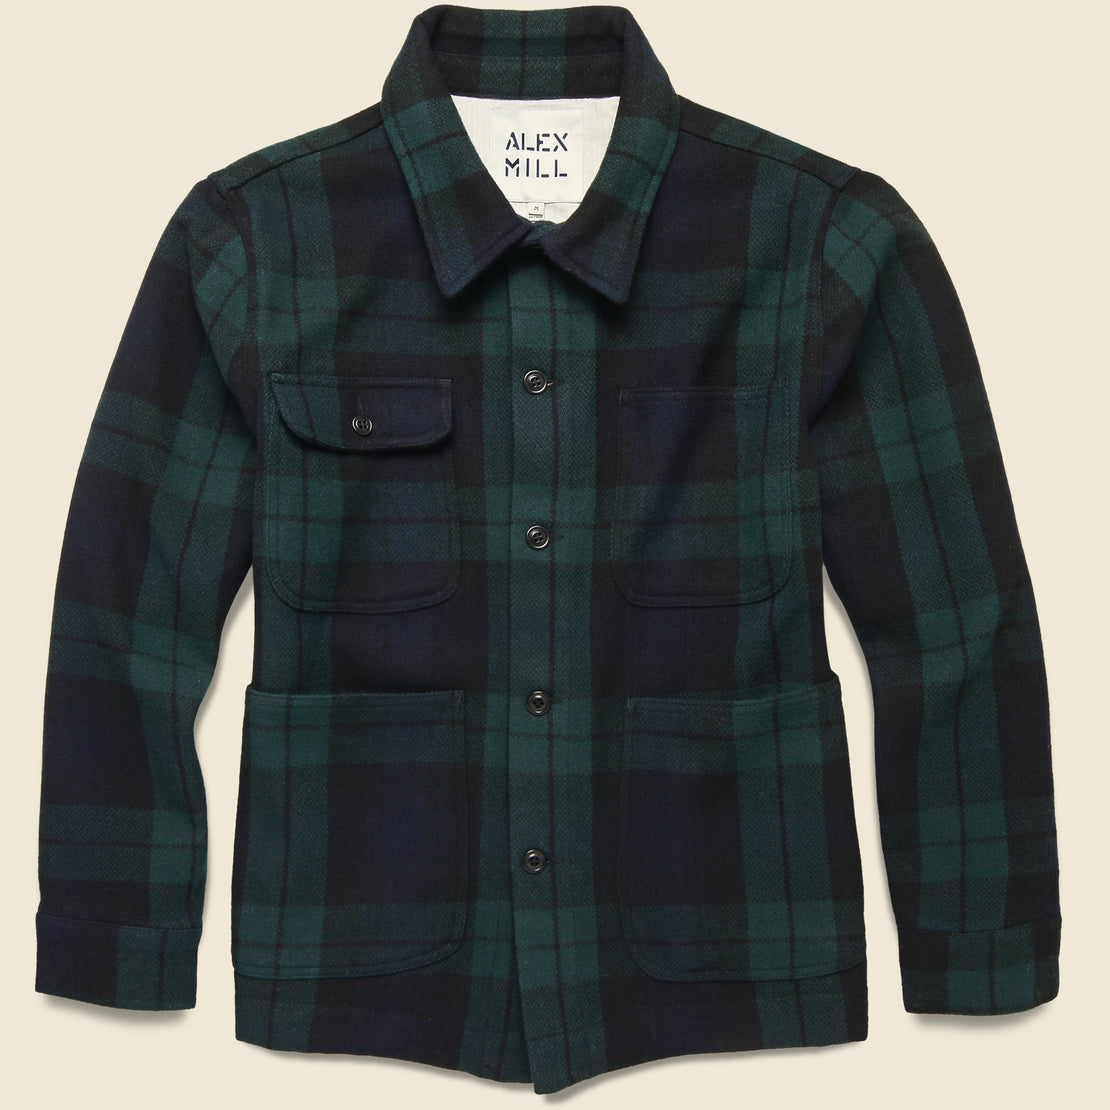 Alex Mill Blackwatch Wool Chore Jacket - Black/Green